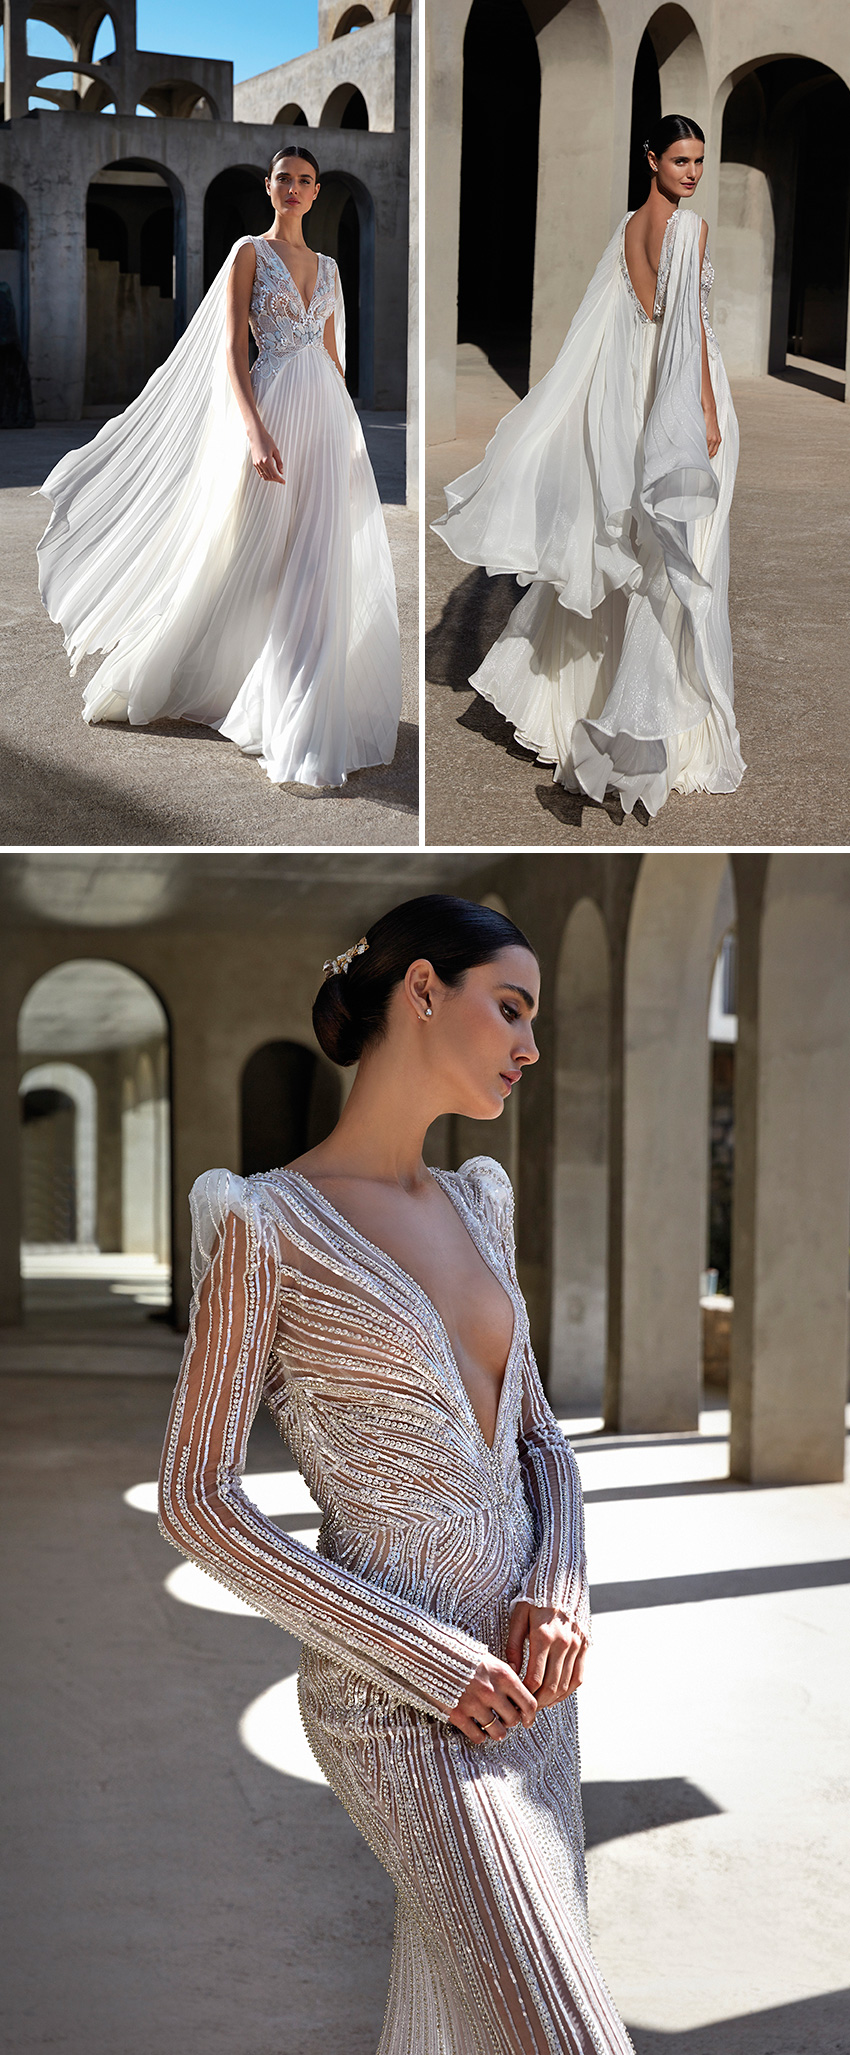 Atelier Pronovias Premiere Haute Couture collection featured pleated Italian fabrics and silk chiffons in Perfect Wedding Magazine